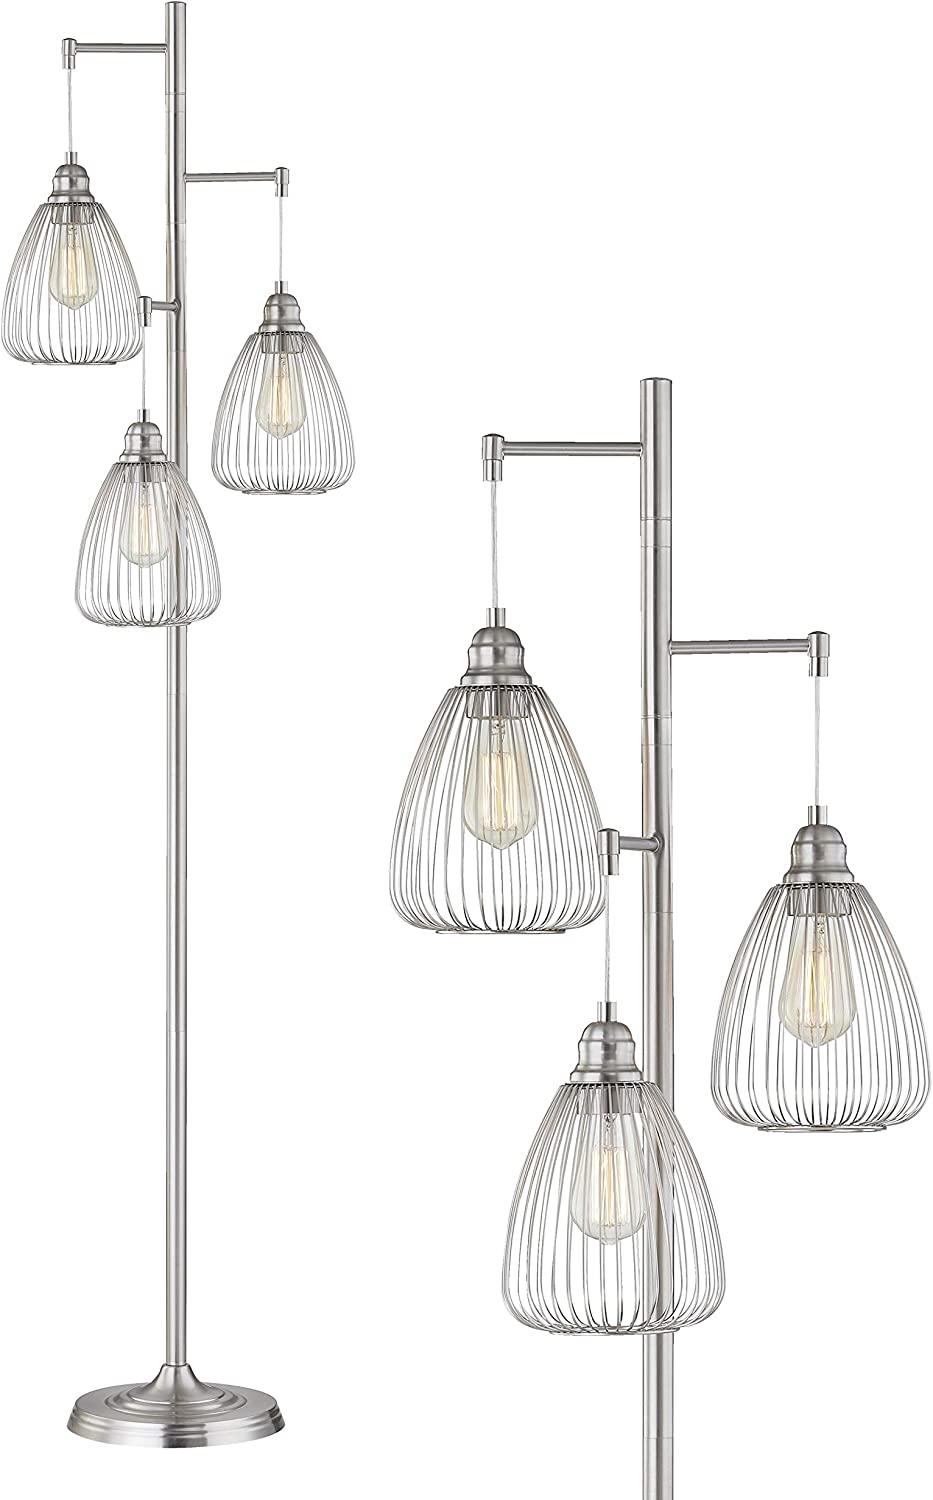 LeeZM Chrome Industrial Floor Lamp For Living Room Modern Floor Lighting Rustic Tall Stand Up Lamp Vintage Farmhouse Tree Floor Lamps For Bedrooms Office Torchiere Standing Lamp 3 Light Bulbs Included